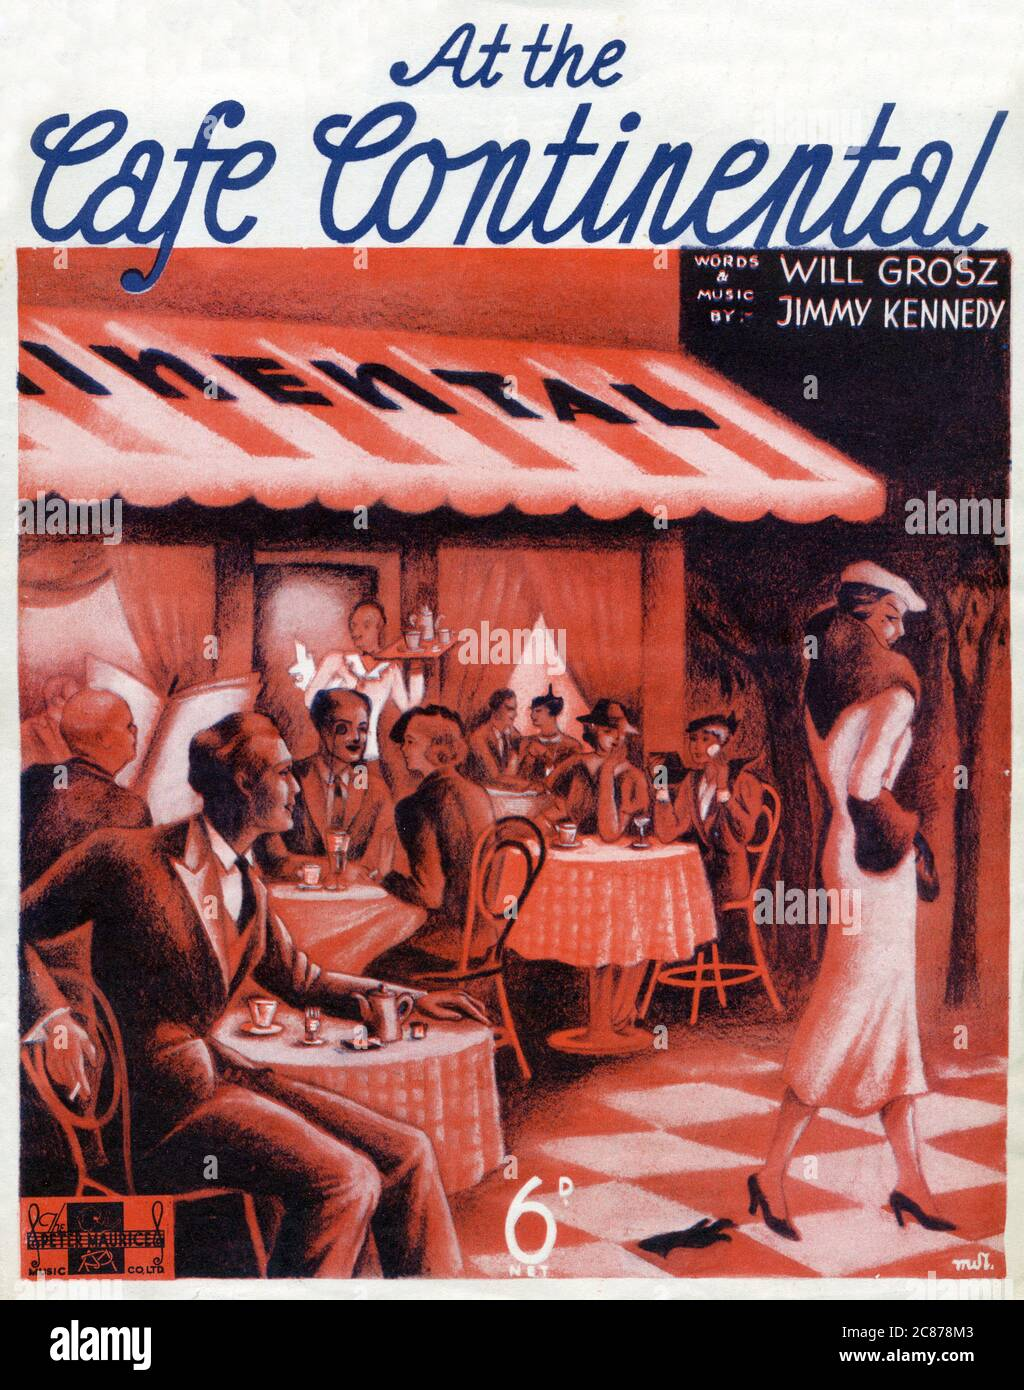 Music sheet cover for 'At the Cafe Continental' by Will Grosz and Jimmy Kennedy. Illustration features a continental cafe with various patrons seated at outdoor tables. A waiter emerges wtih drinks and an elegant woman catches they eye of an admirer.     Date: 1936 Stock Photo